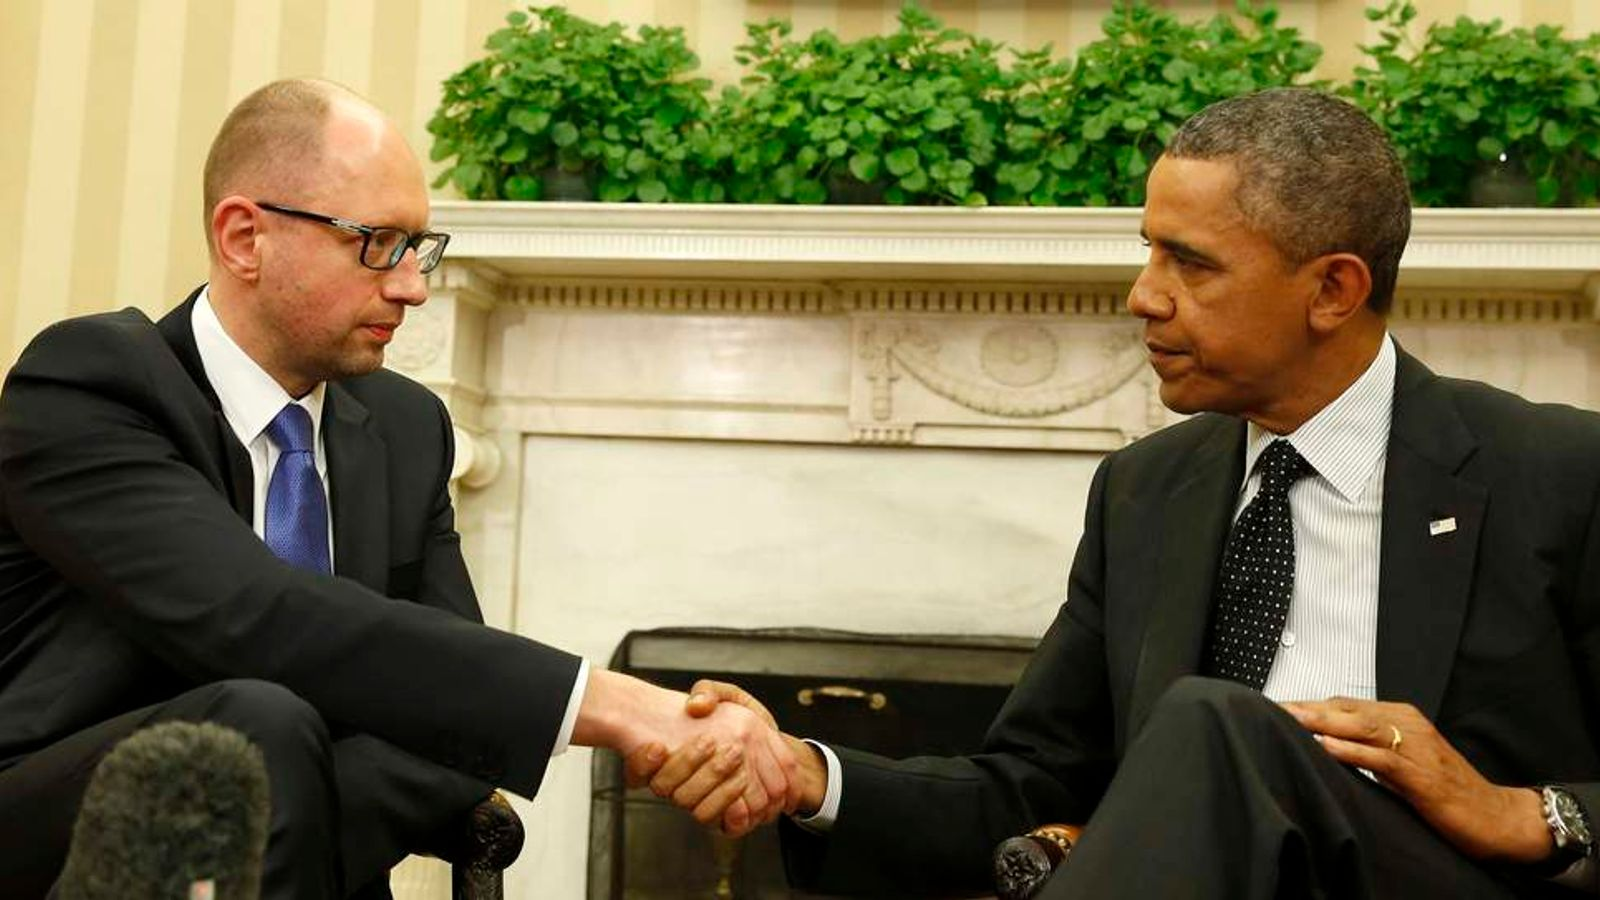 U.S. President Barack Obama shakes hands as he hosts a meeting with Ukraine Prime Minister Arseniy Yatsenyuk in the Oval Office of the White House in Washington